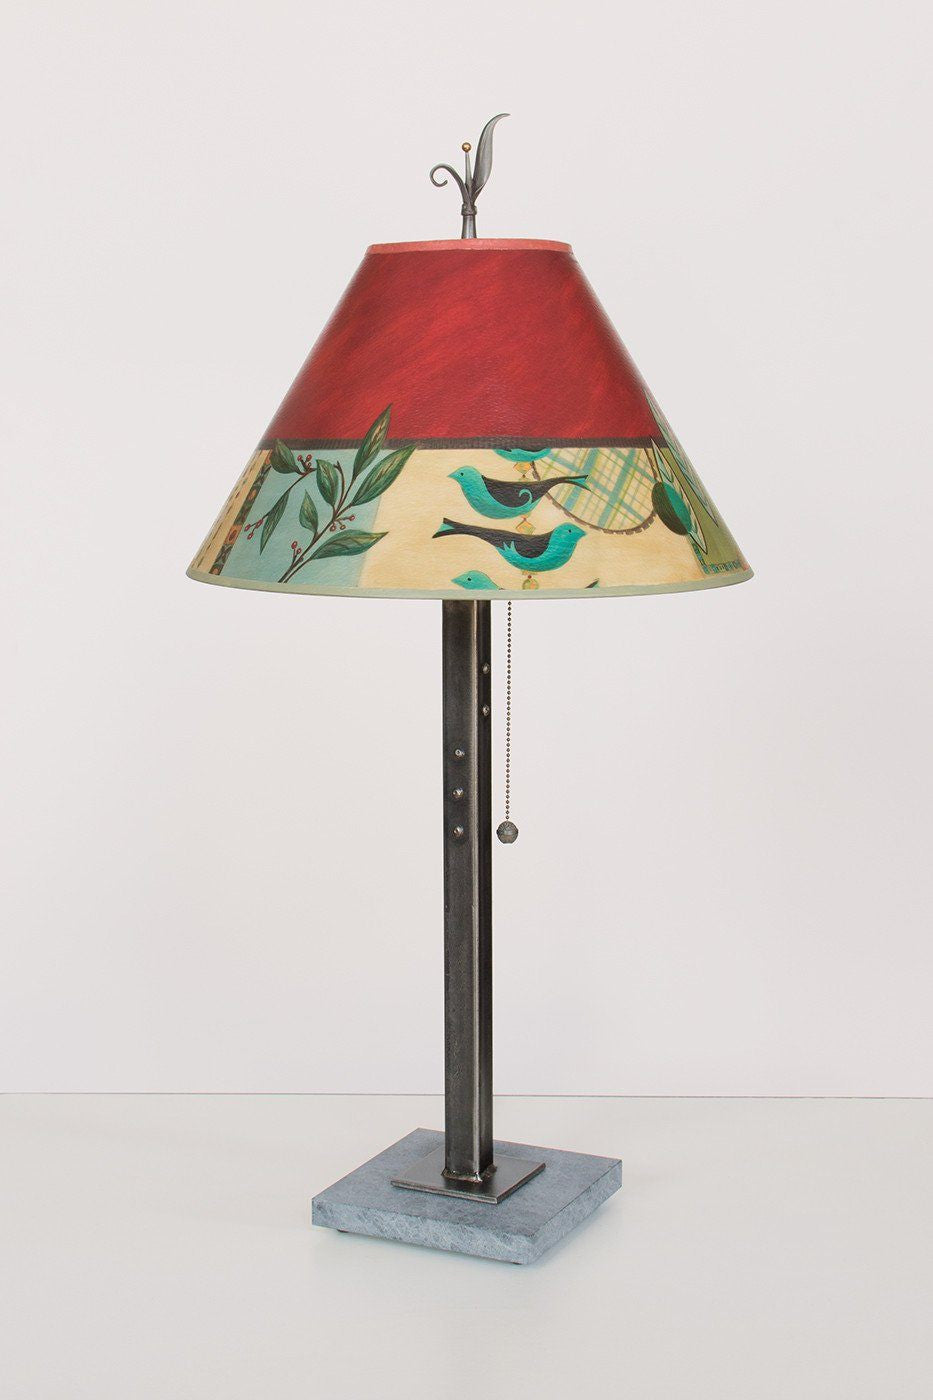 Steel Table Lamp on Marble with Medium Conical Shade in New Capri Lit